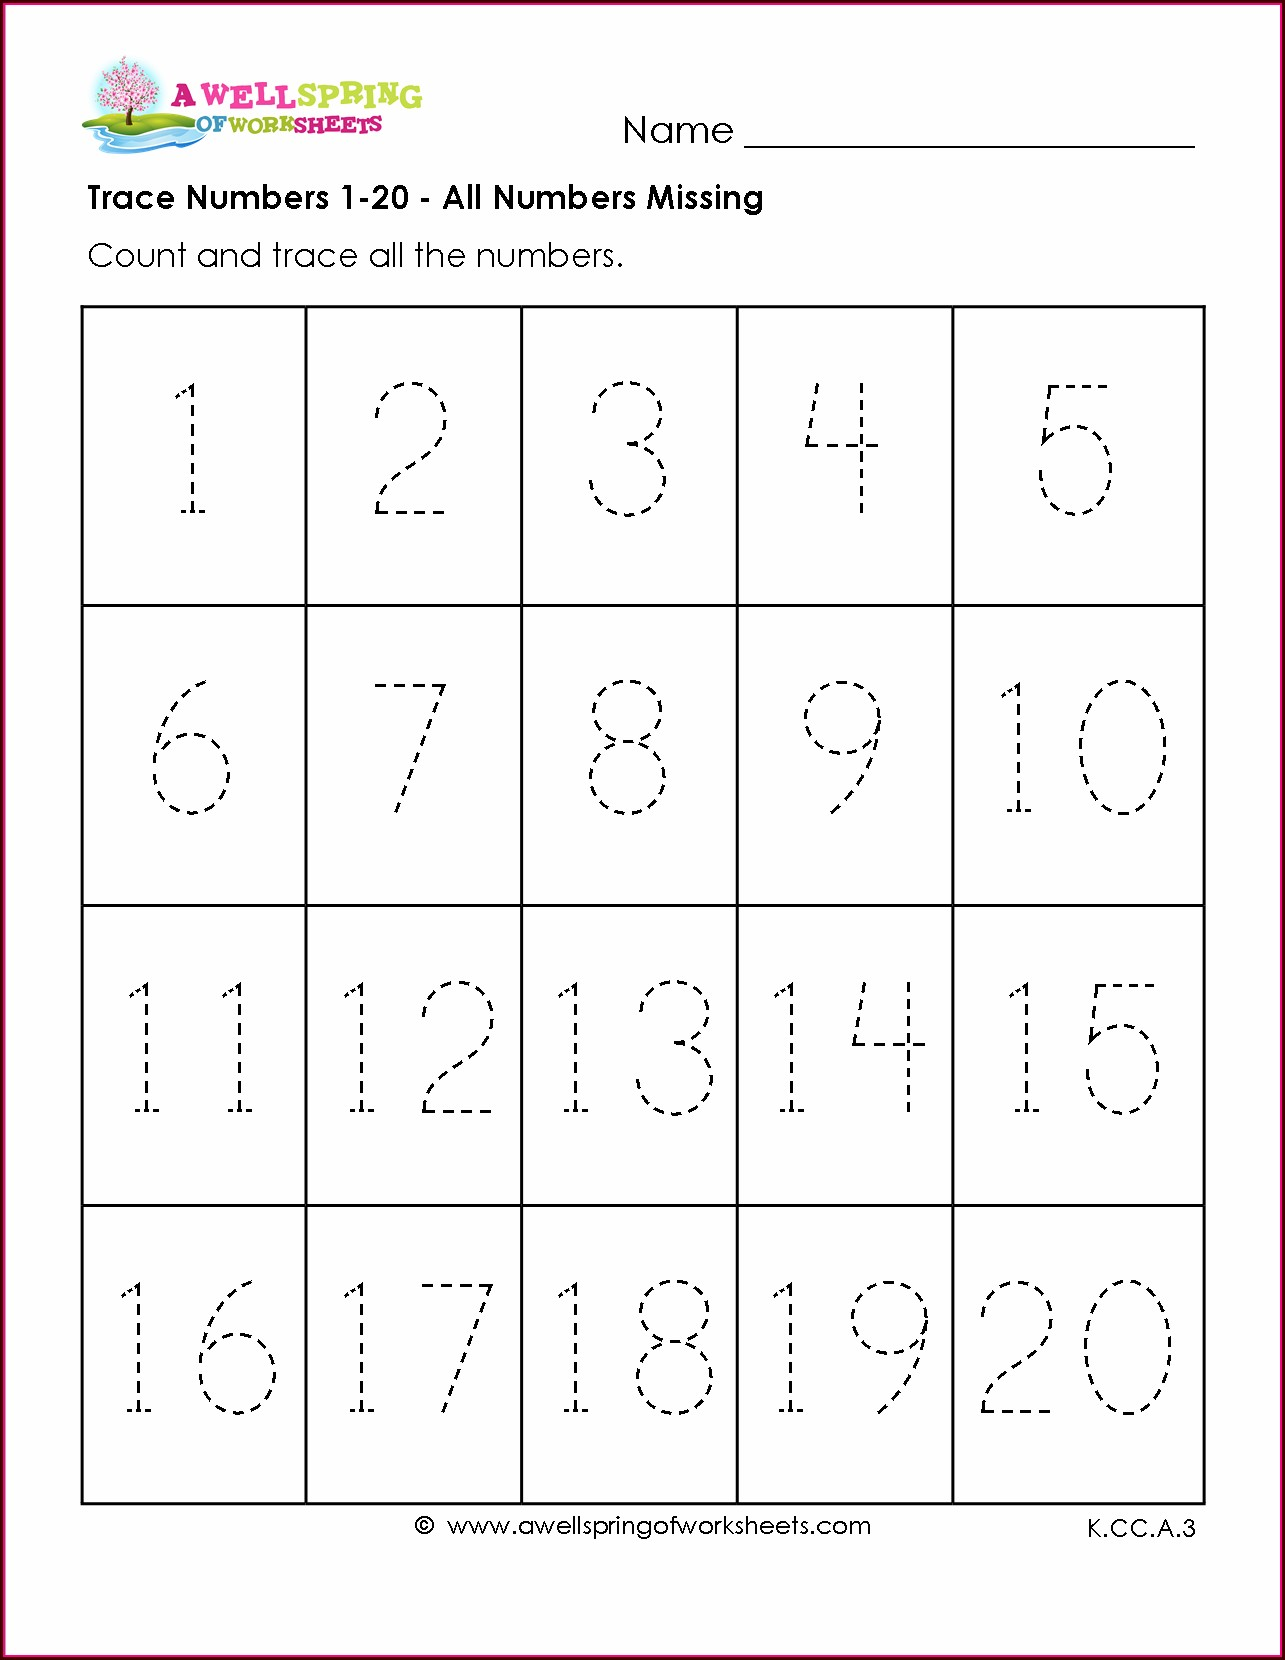 Number Tracing Worksheets 1 50 Free Printable Worksheets And Activities For Teachers Parents Tutors And Homeschool Families